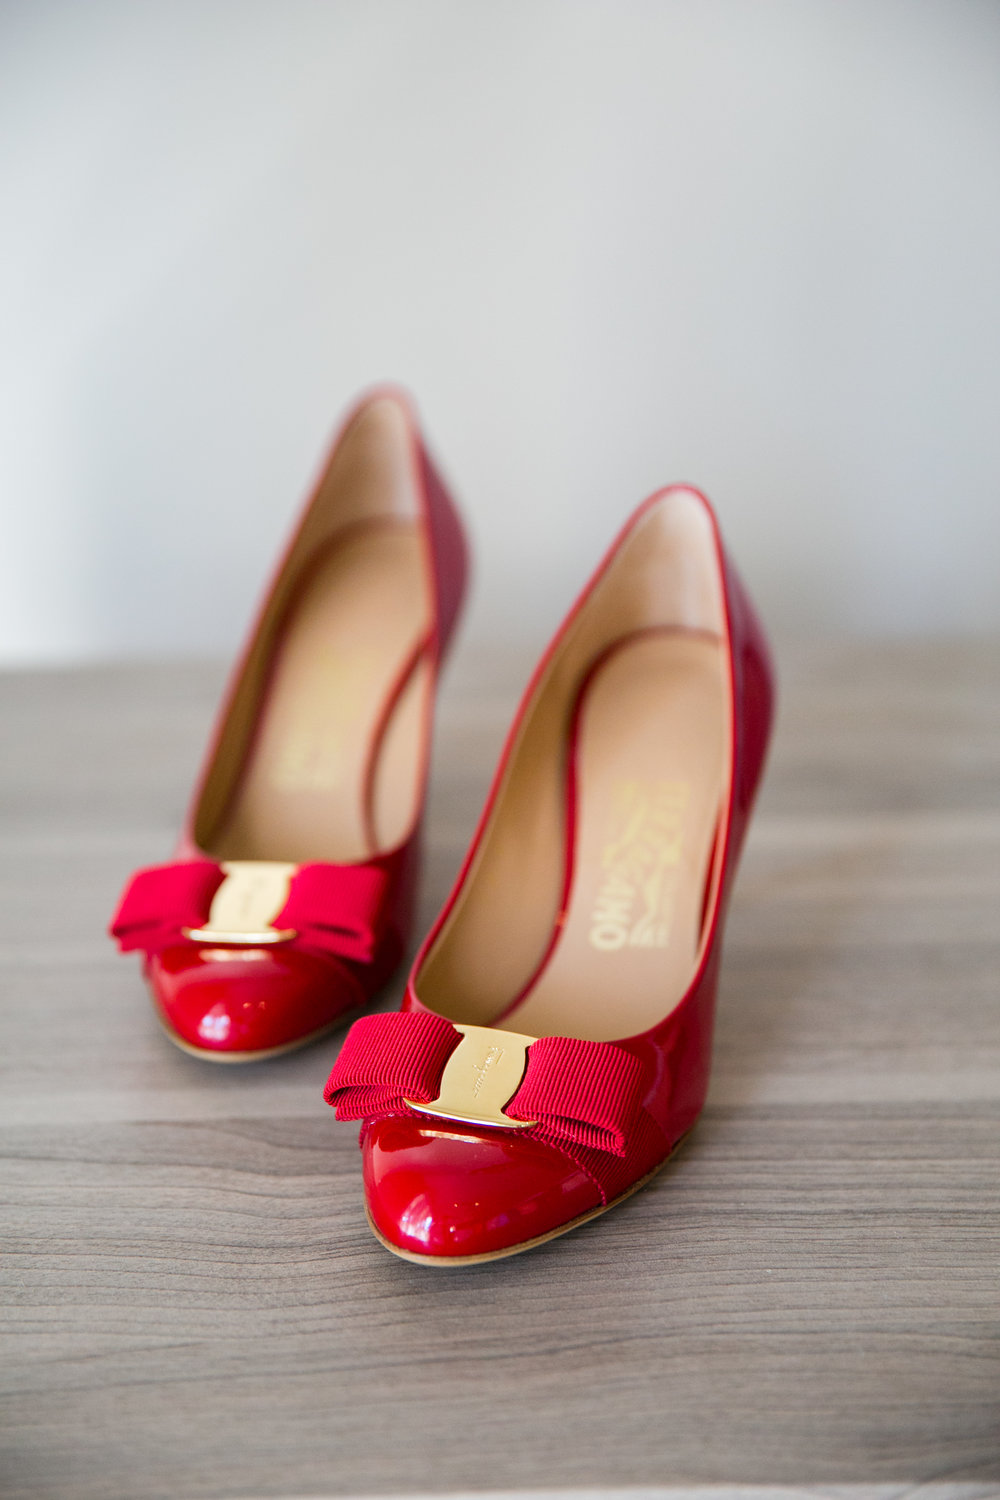 Red Ferragamo pumps